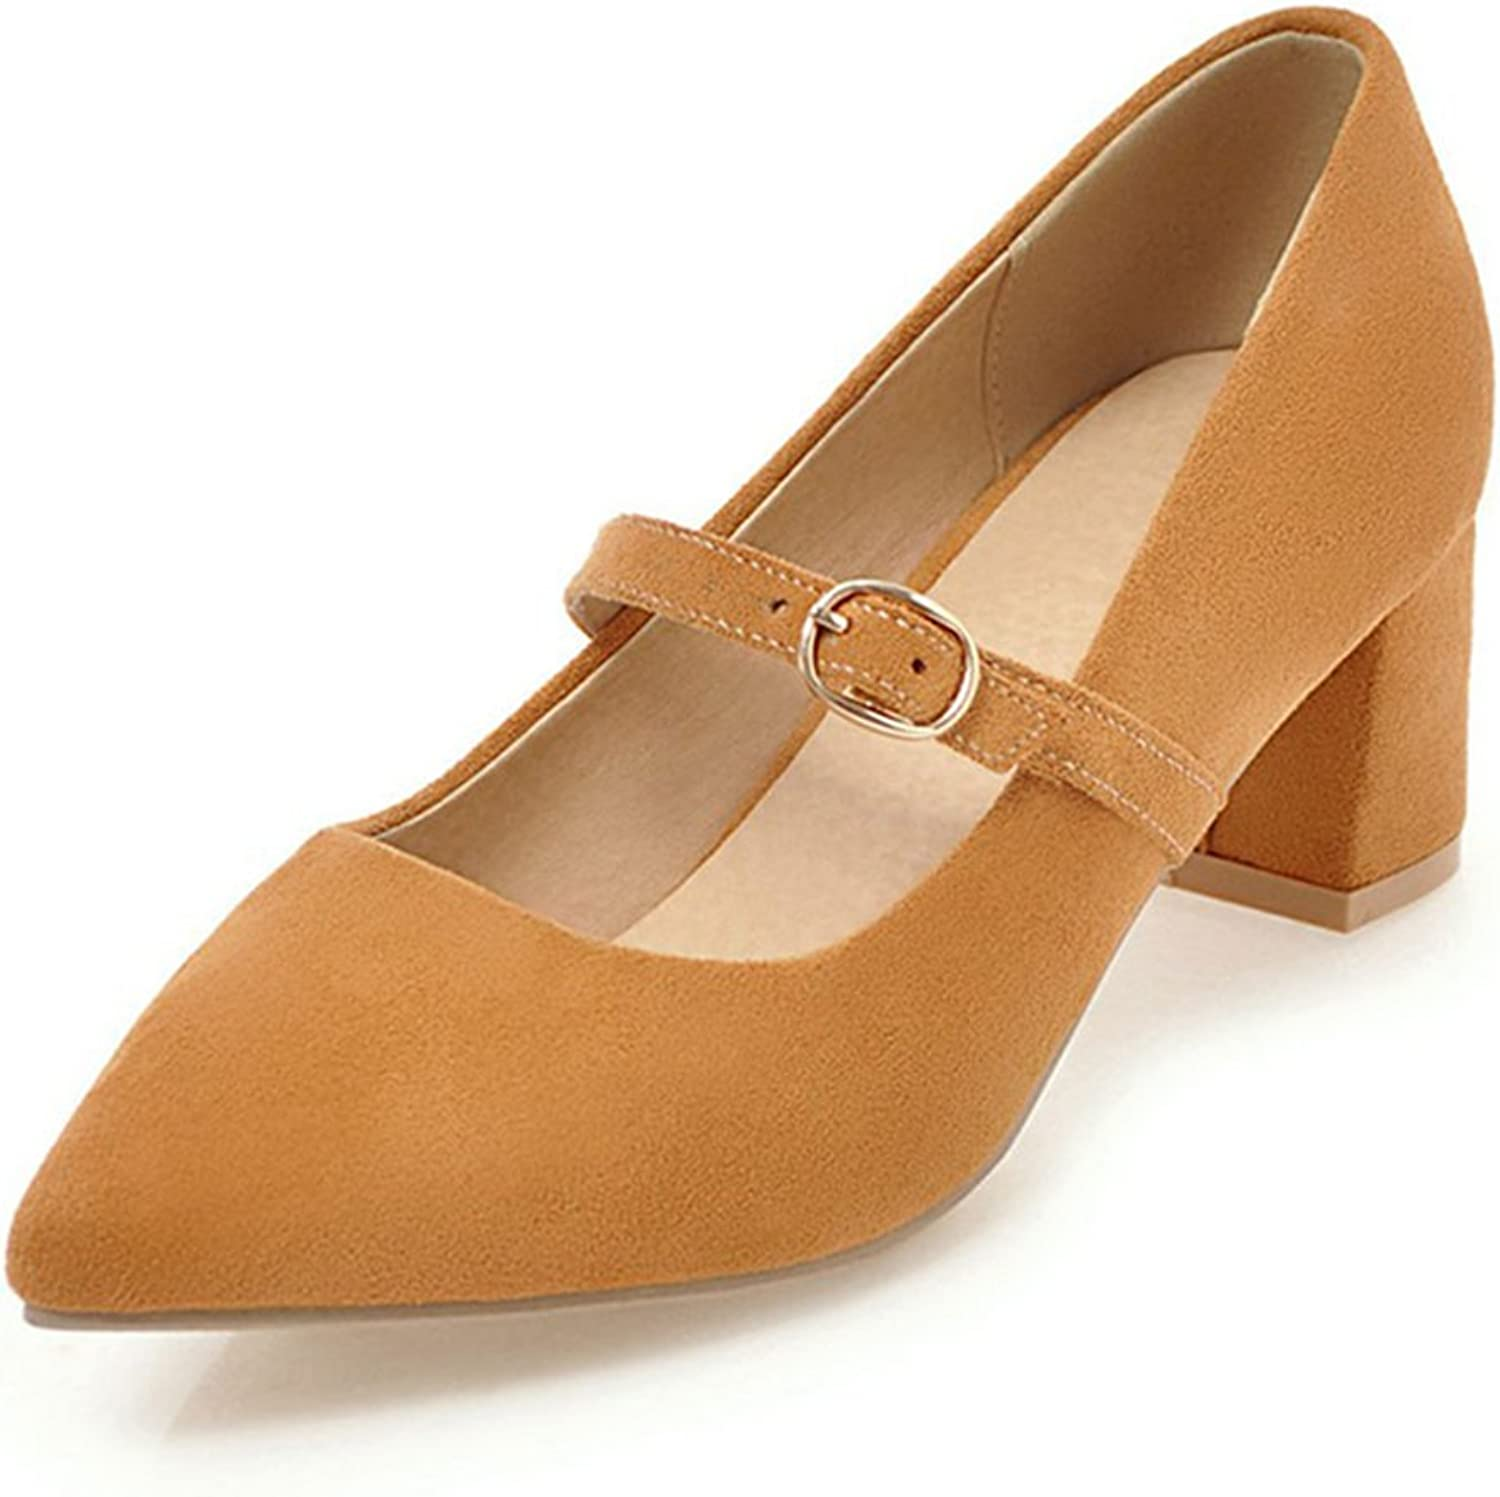 York Zhu Women Pumps, Concise Buckle Strap Square Toe Square Heel Office shoes